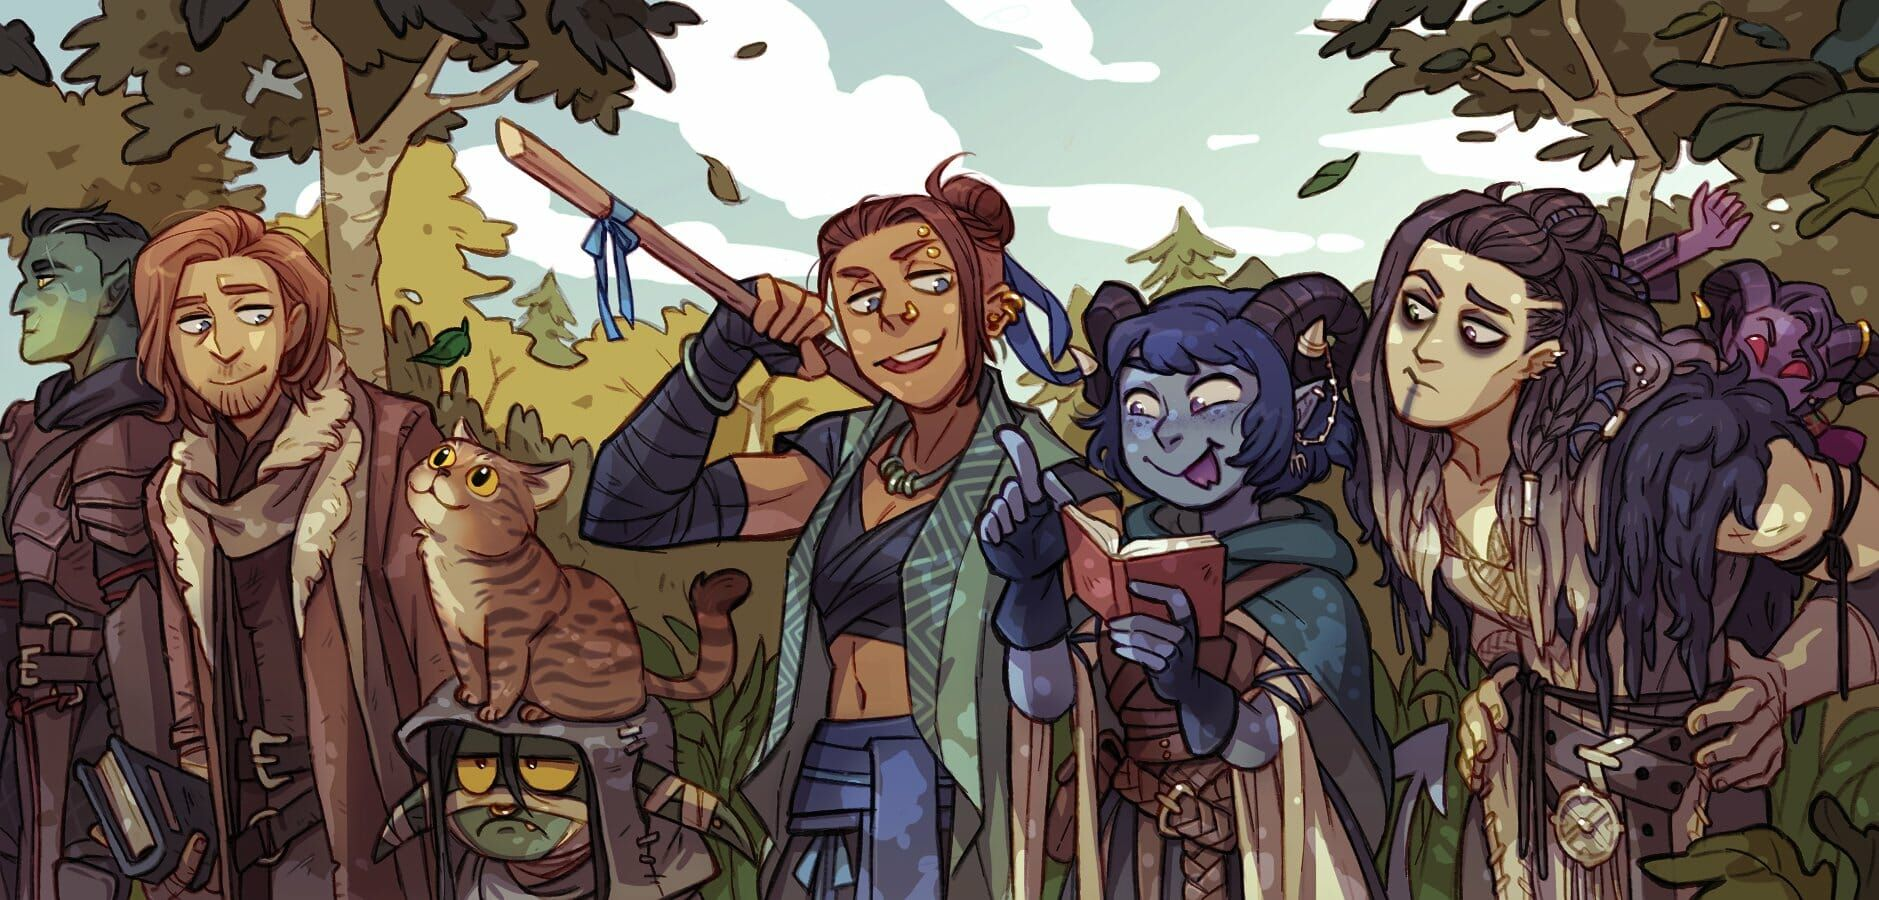 Fan Art Gallery The Lonely Way Critical Role In 2020 Character Art Fantasy Character Design Critical Role Fan Art